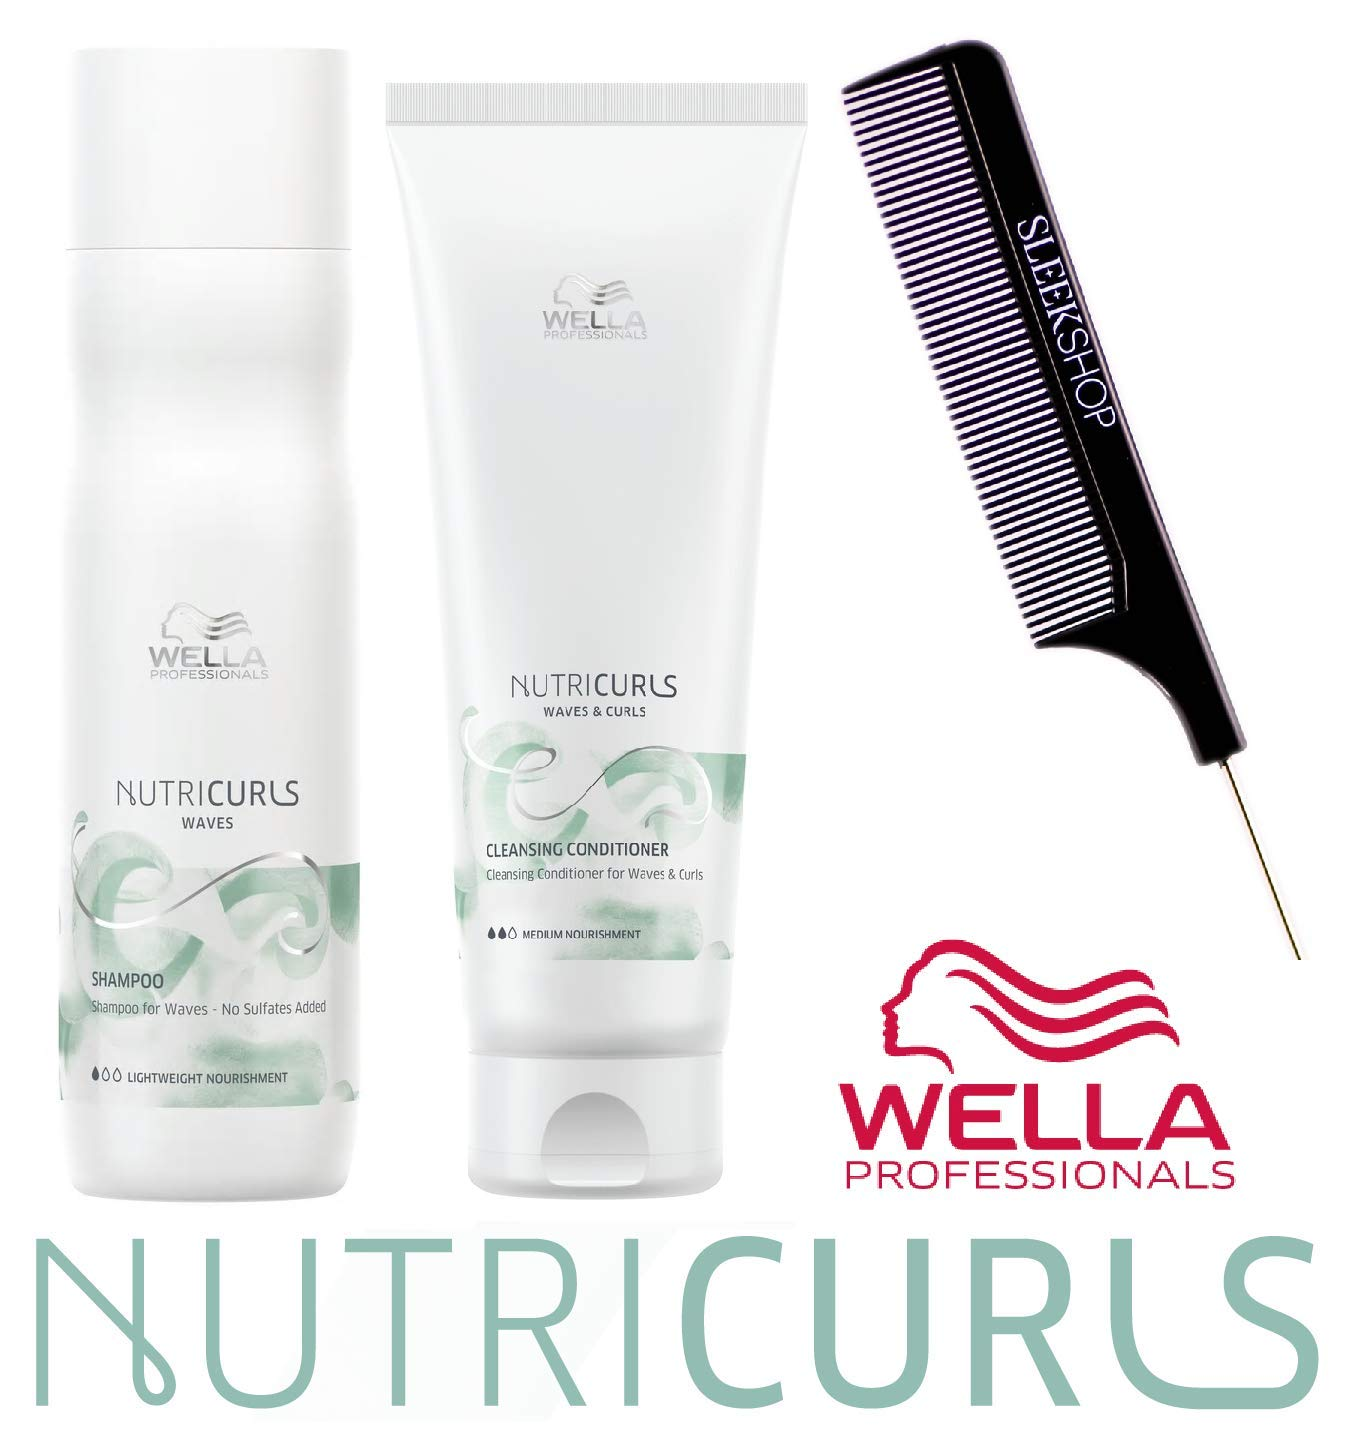 Wella NUTRICURLS Shampoo & Cleansing Conditioner for WAVES & CURLS Duo Set (w/Sleek Comb) Lightweight + Medium Nourishment, No Sulfates Added (8.4 oz + 8.4 oz - DUO KIT) by Coty Wella